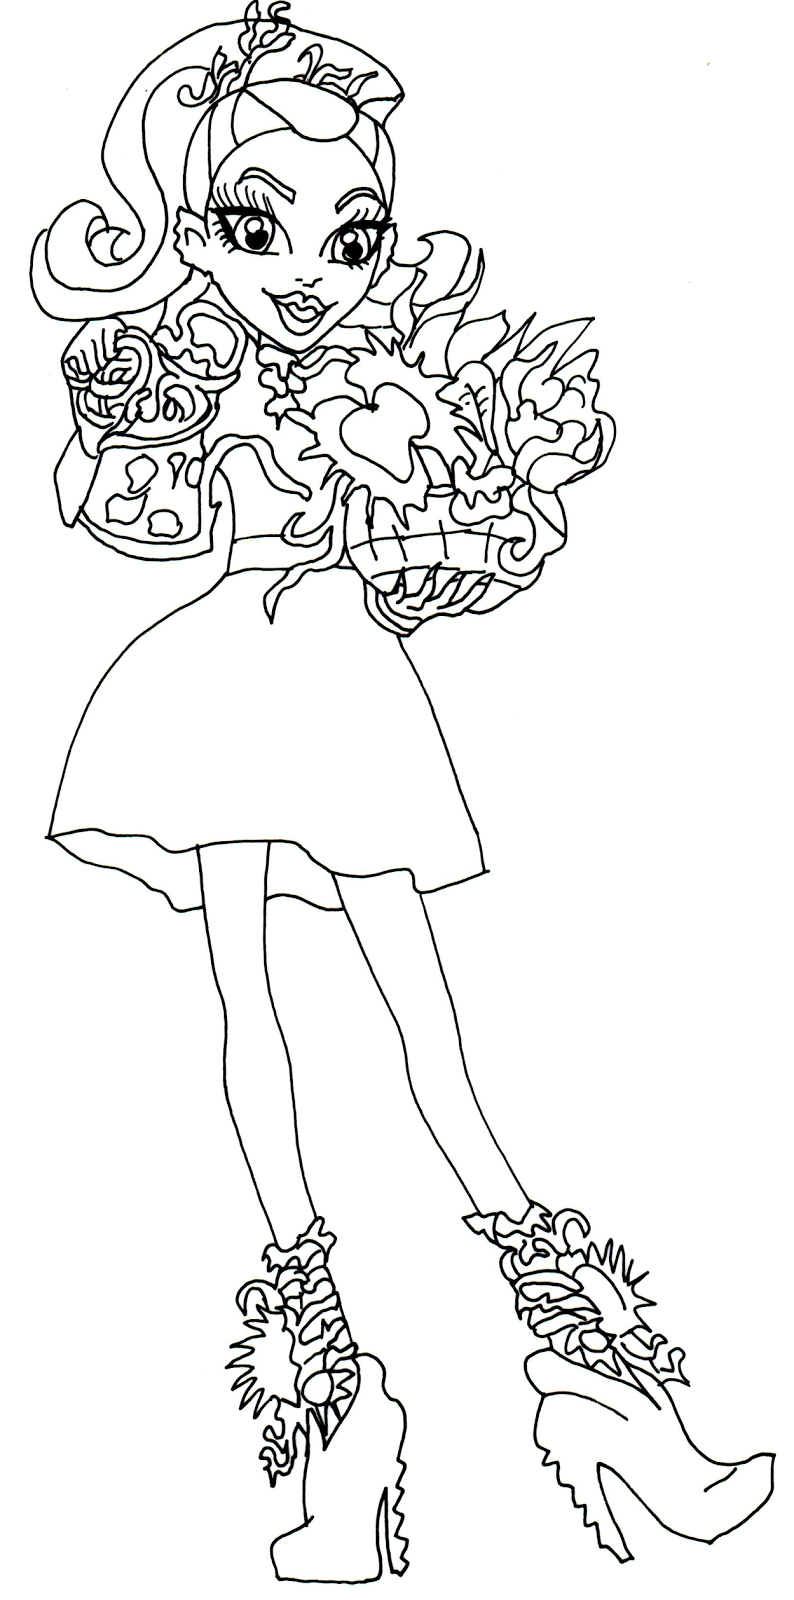 free printable monster high coloring pages venus mcflytrap gloom and bloom monster high